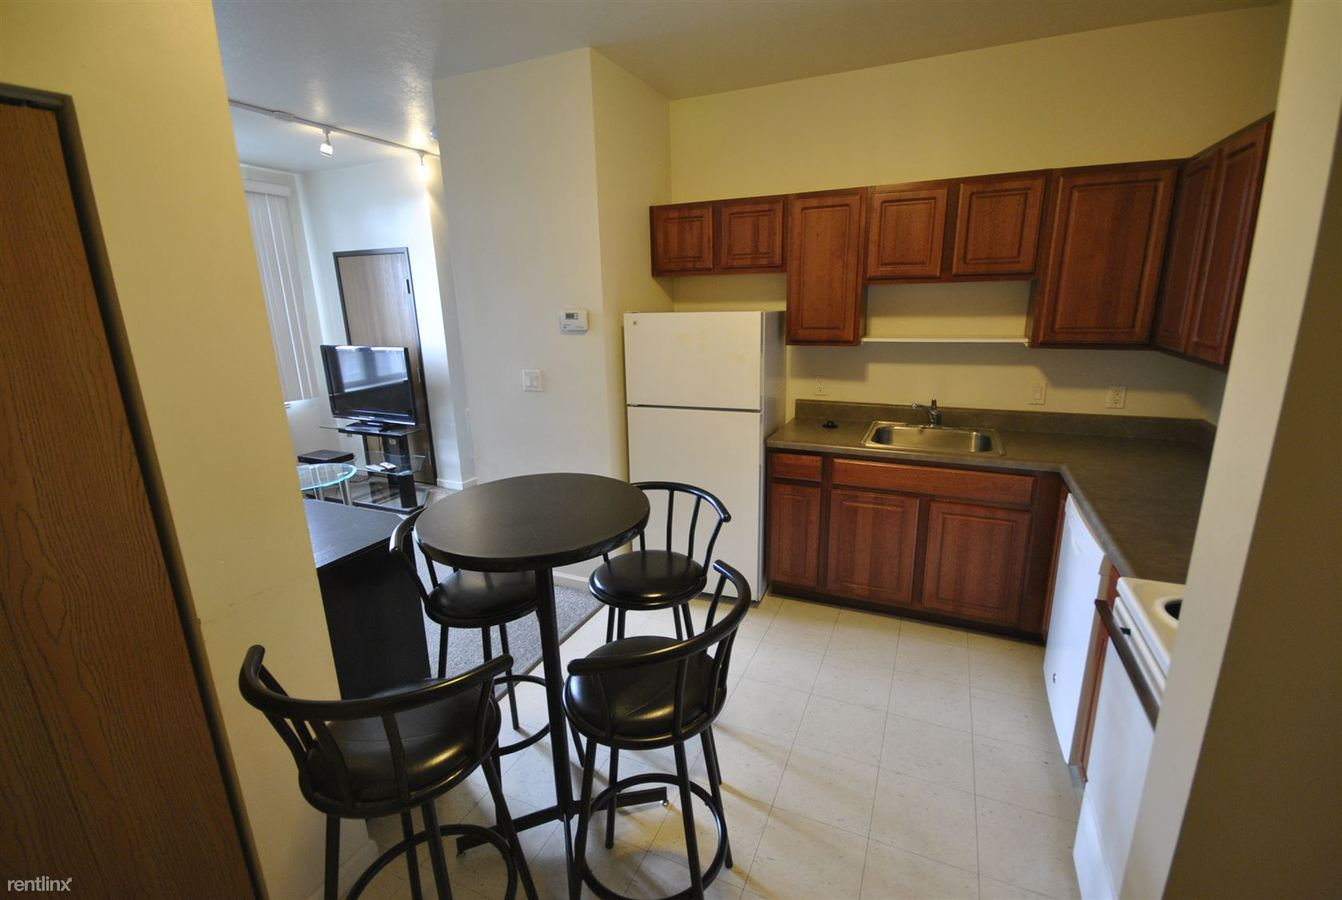 3 Bedrooms 1 Bathroom Apartment for rent at Corner House Apartments in Ann Arbor, MI